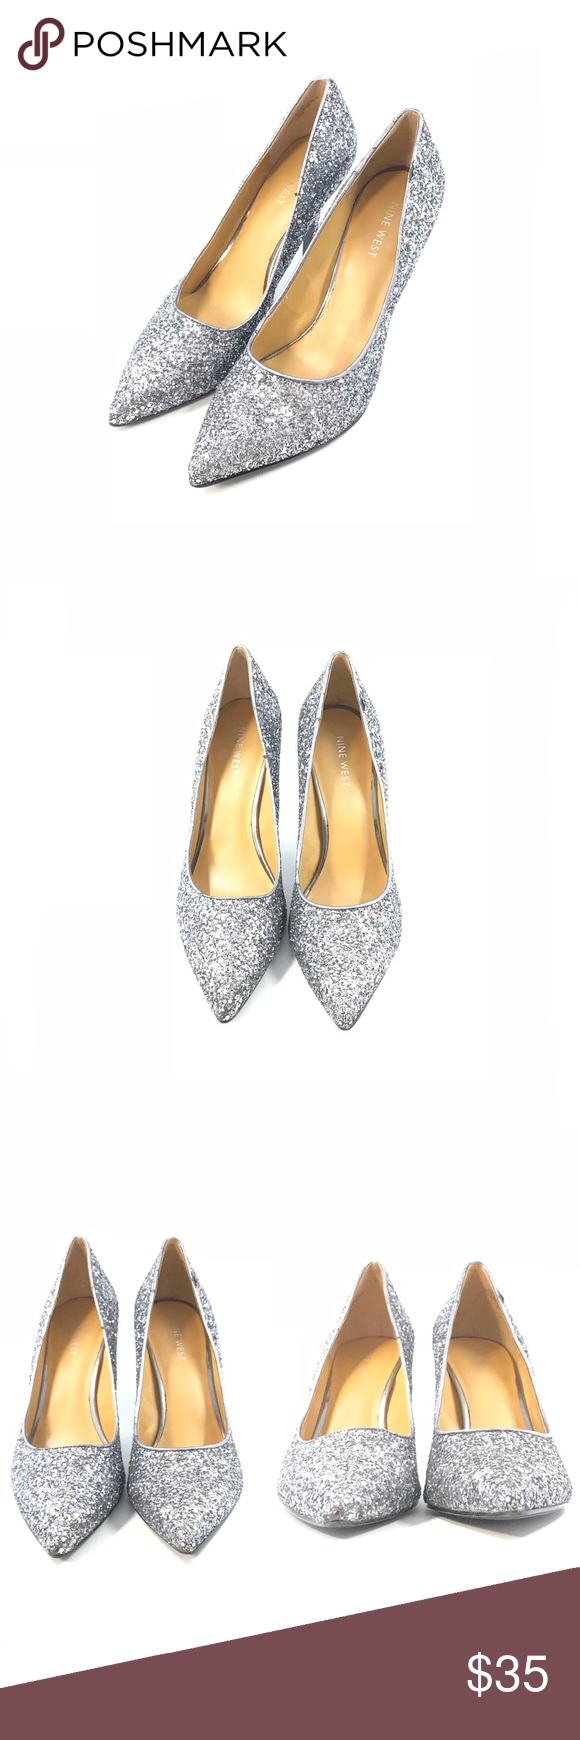 27ec5130620 Nine West Flax Sparkly Glitter Pump Size 8.5M Fits true to size. Pointed toe  Allover metallic silver glitter Slip-on Approx. 3 7 8